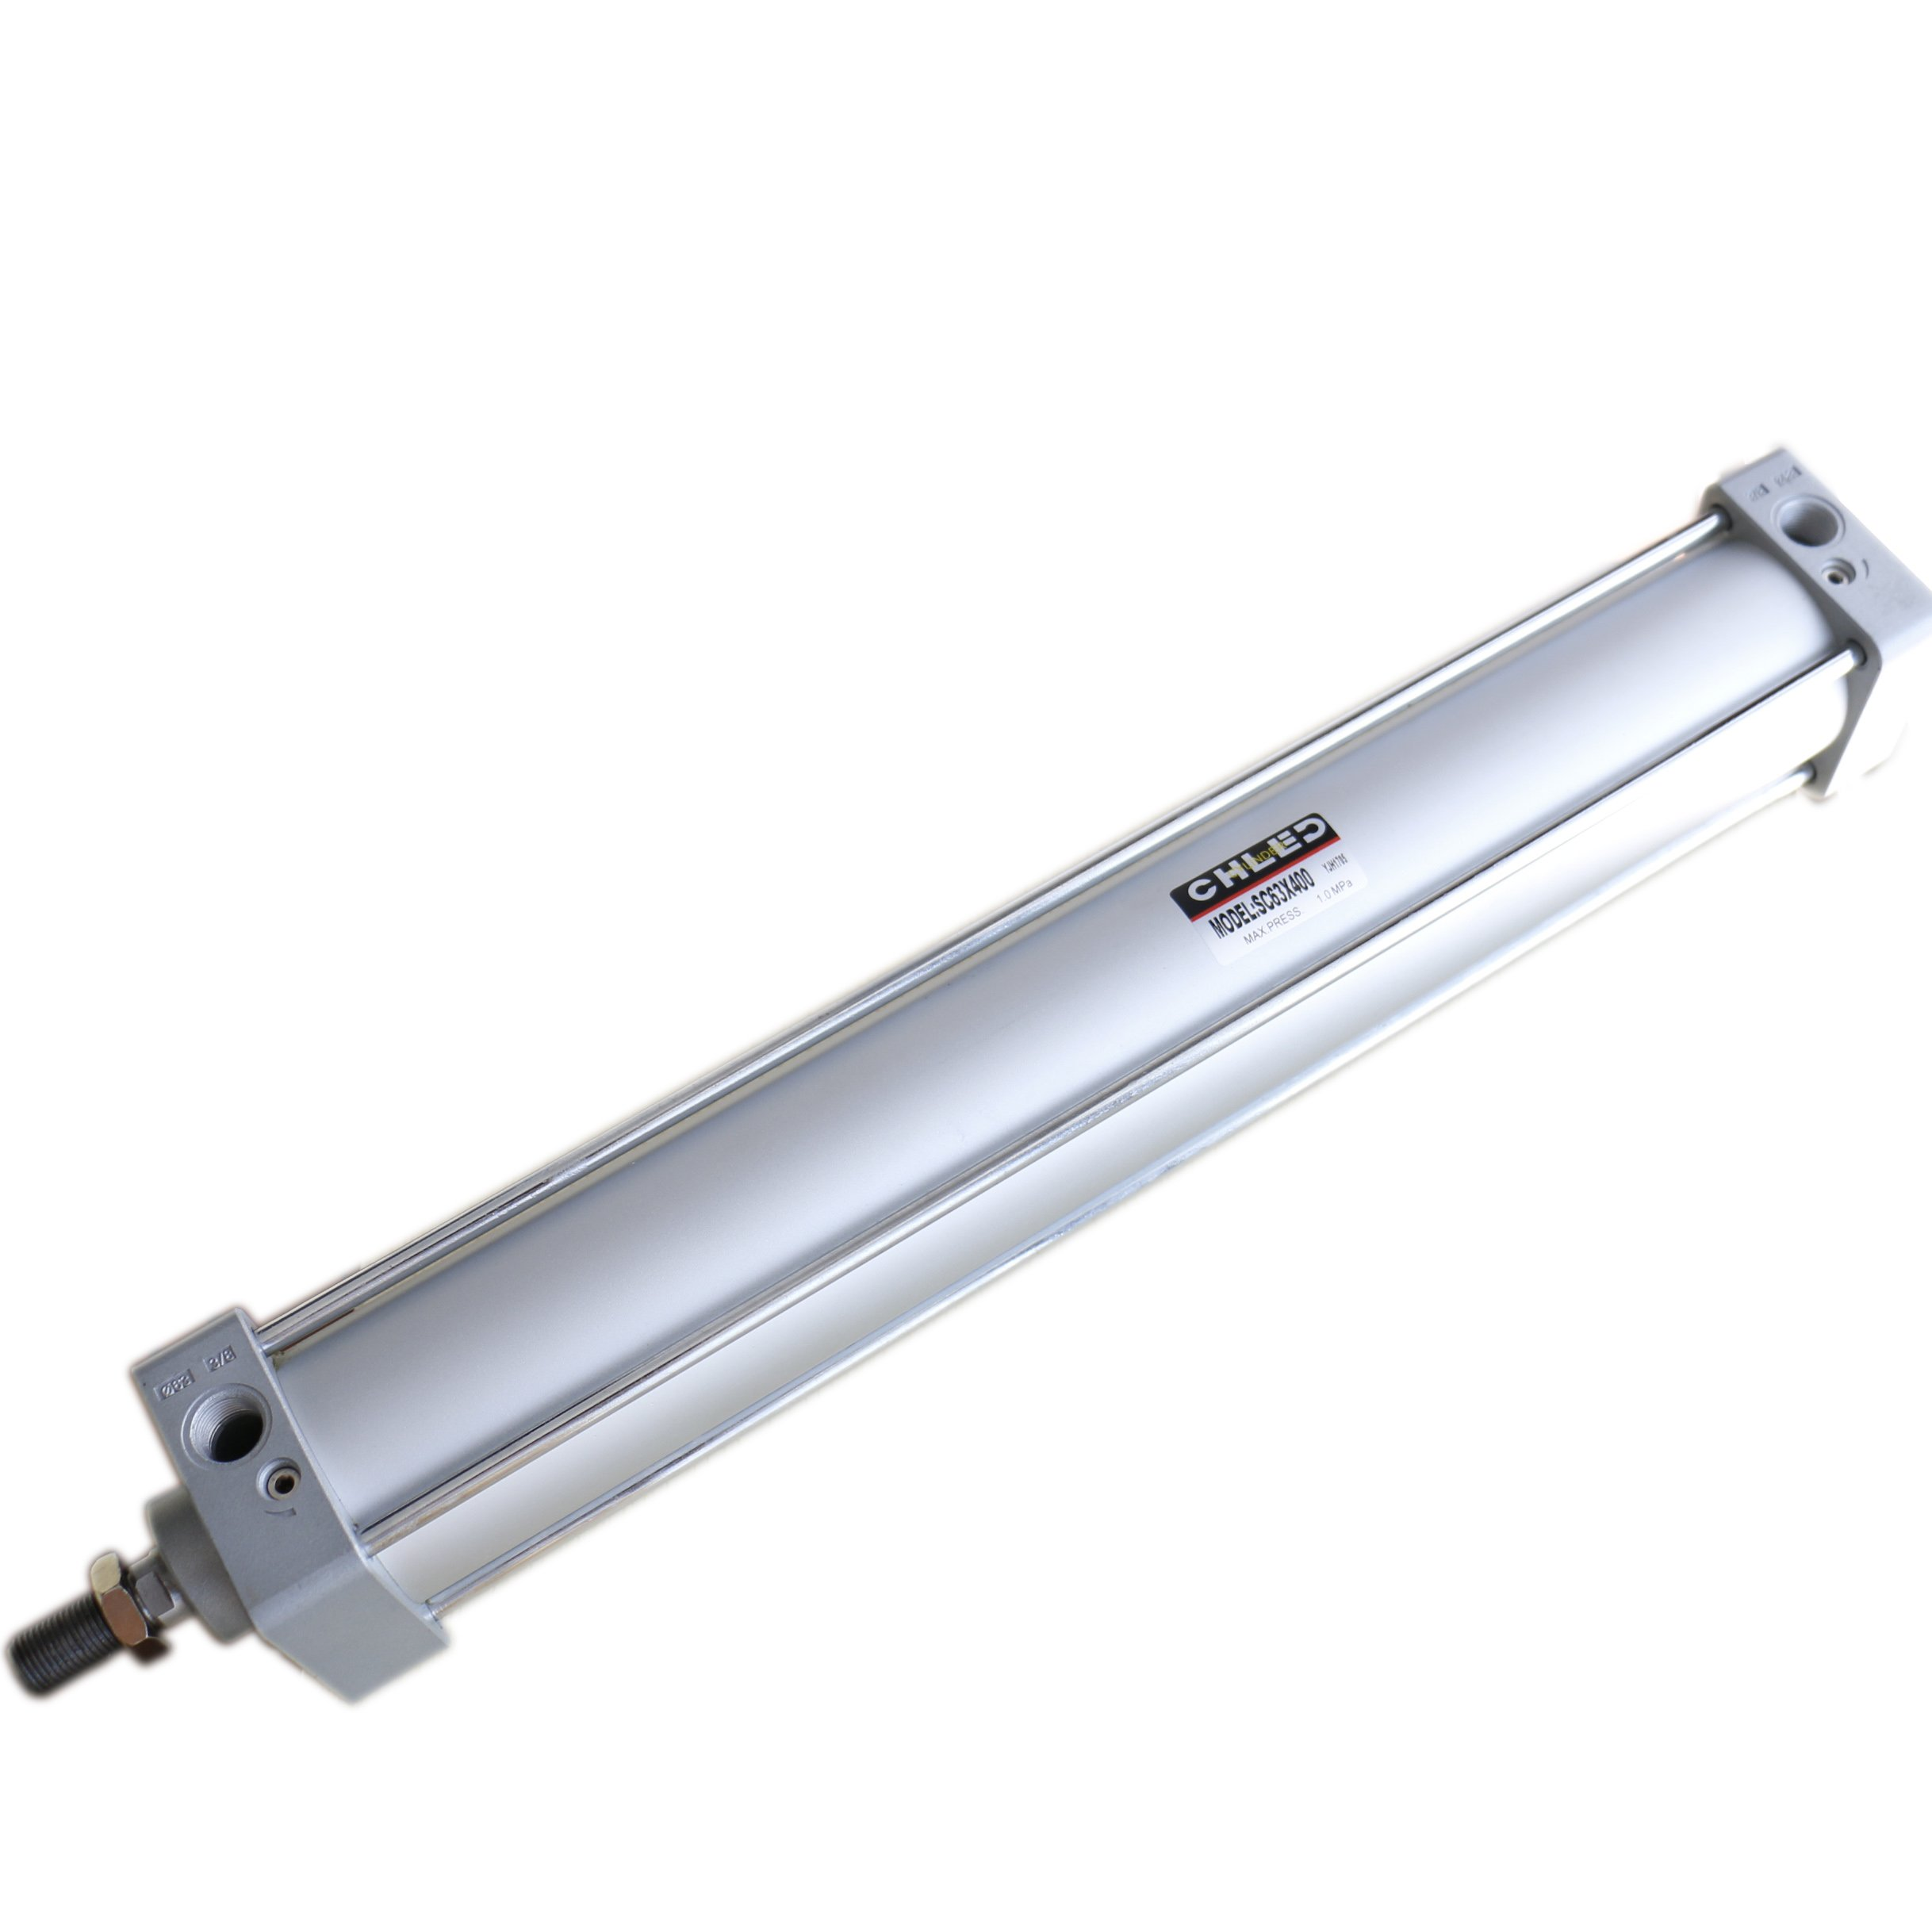 Baomain Pneumatic Air Cylinder SC 63 x 400 PT 3/8, Bore: 2 1/2 inch, Stroke: 16 inch, Screwed Piston Rod Dual Action